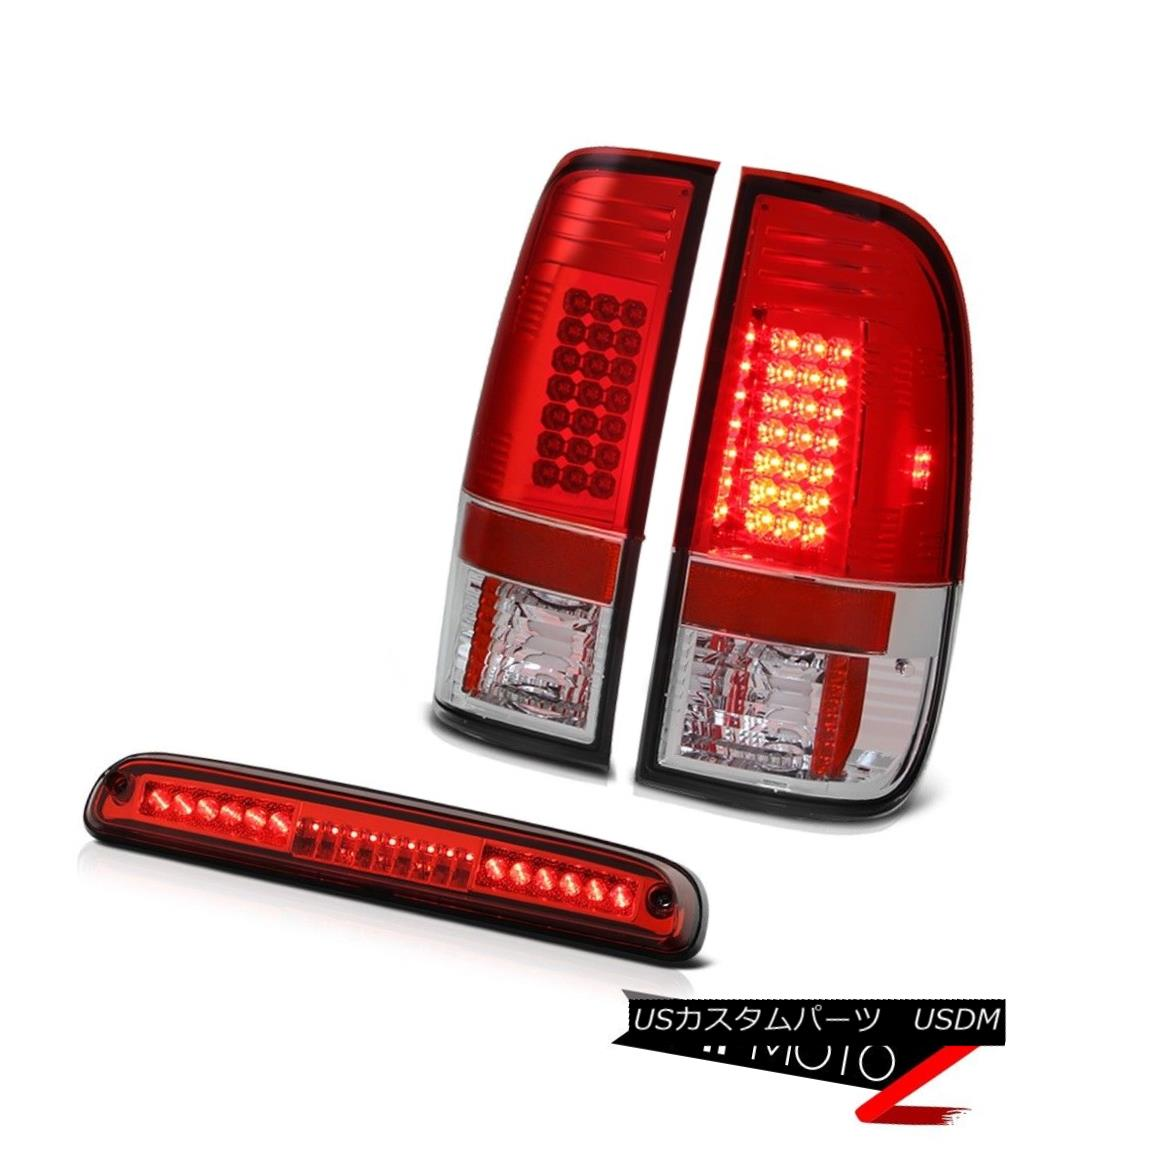 テールライト 2008-2010 Ford F250 SuperDuty 6.3L LED Parking Signal Tail Lights 3rd Brake Red 2008-2010 Ford F250 SuperDuty 6.3L LEDパーキング信号テールランプ第3ブレーキレッド